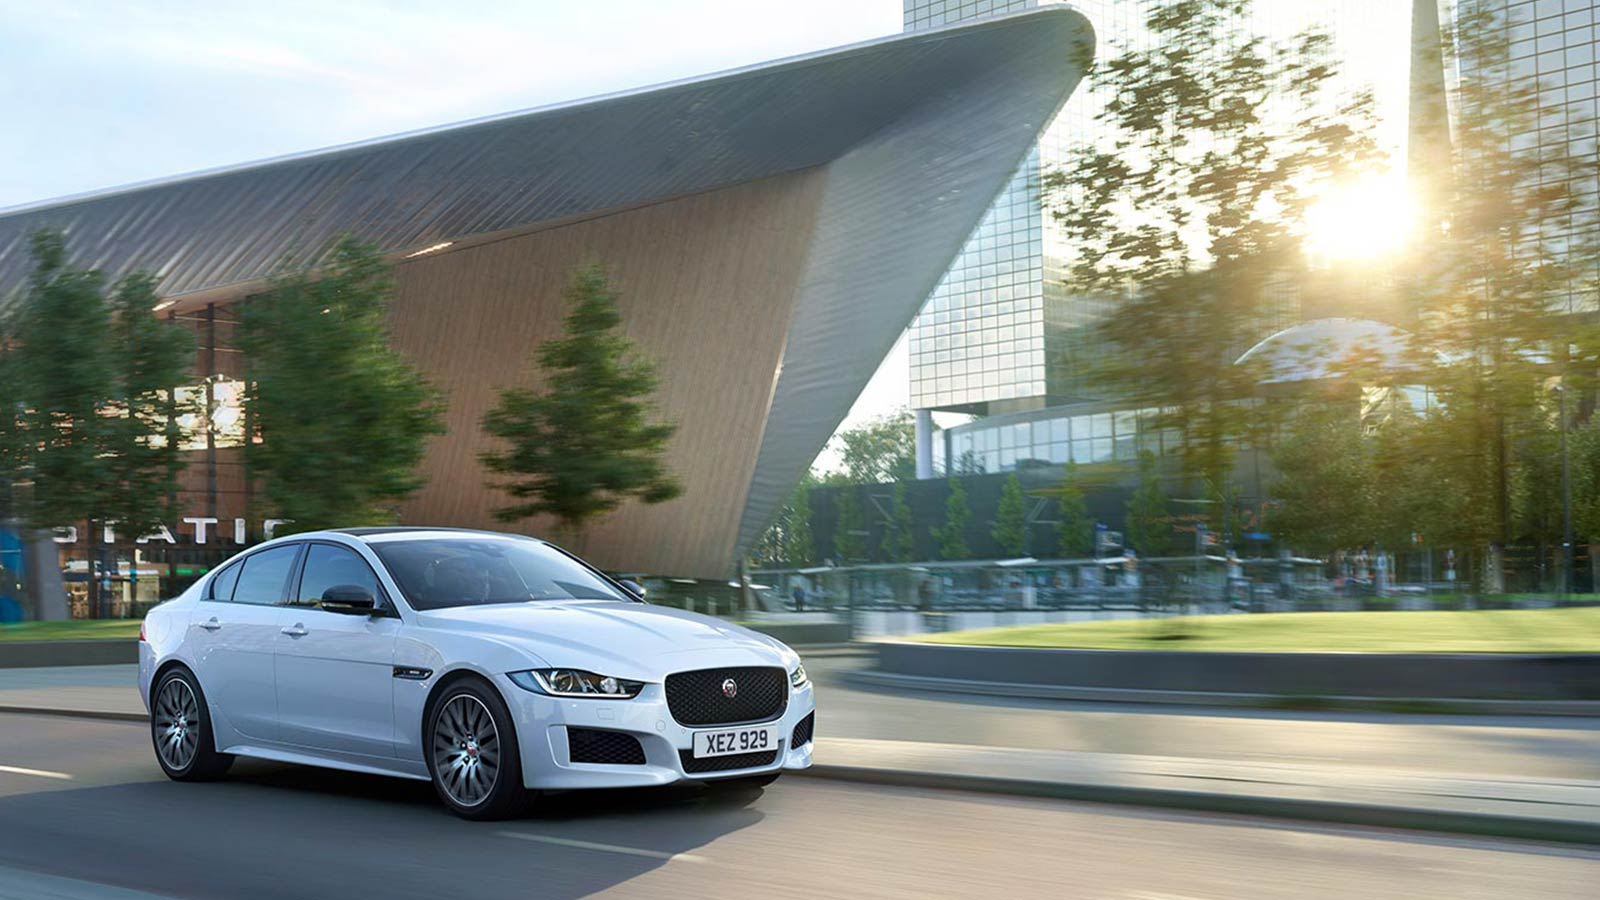 Jaguar XE S parked on a gravel driveway, surrounded by bushes and trees.